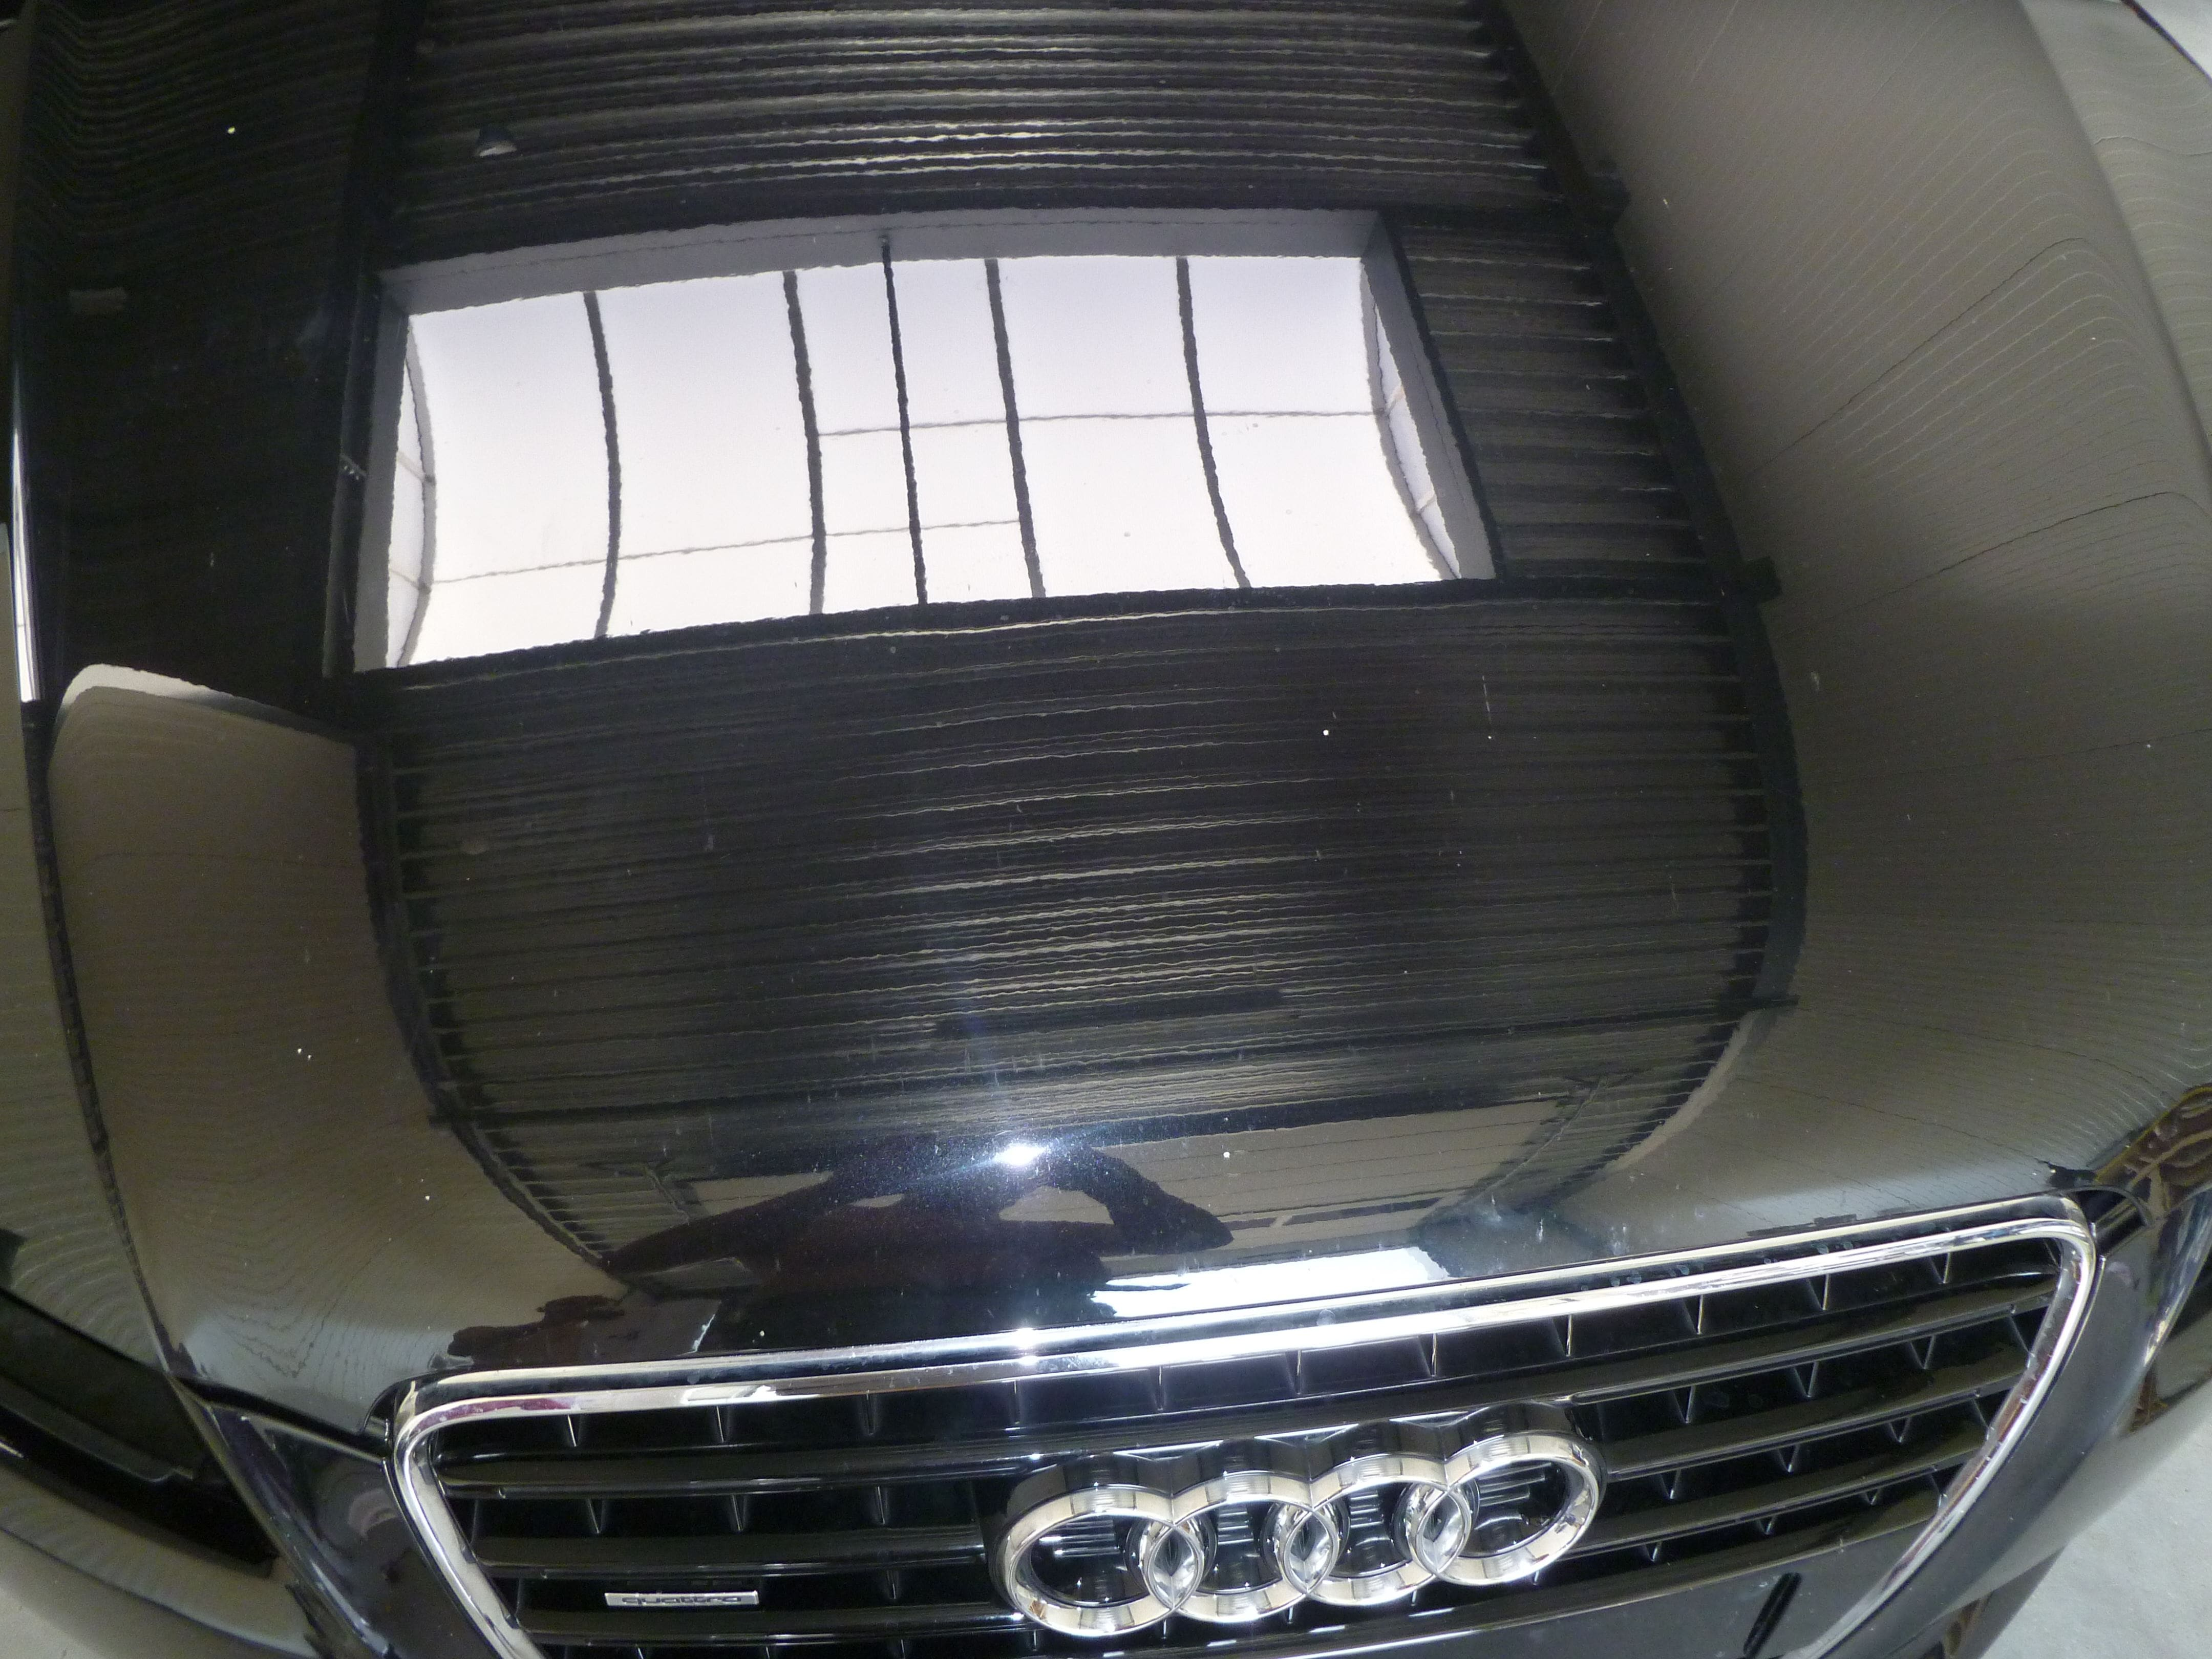 Audi A5 coupe met Metallic Witte Wrap, Carwrapping door Wrapmyride.nu Foto-nr:4696, ©2020